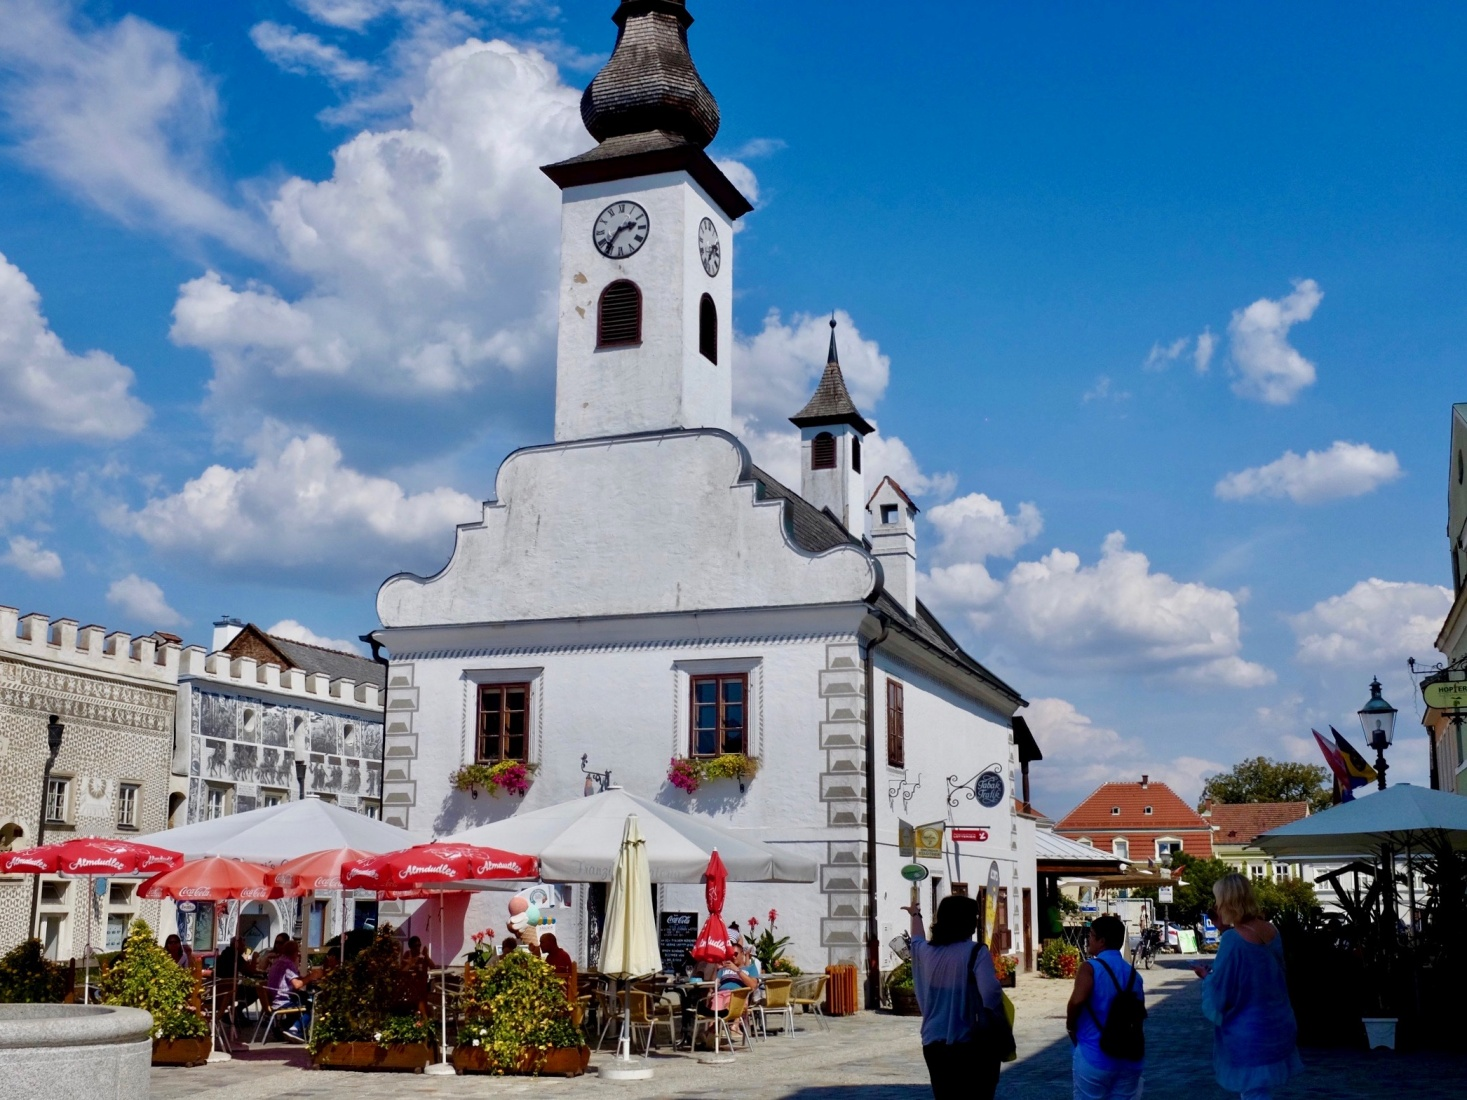 An old church and locals eating ice cream in the summer heat of Gmünd, Austria.